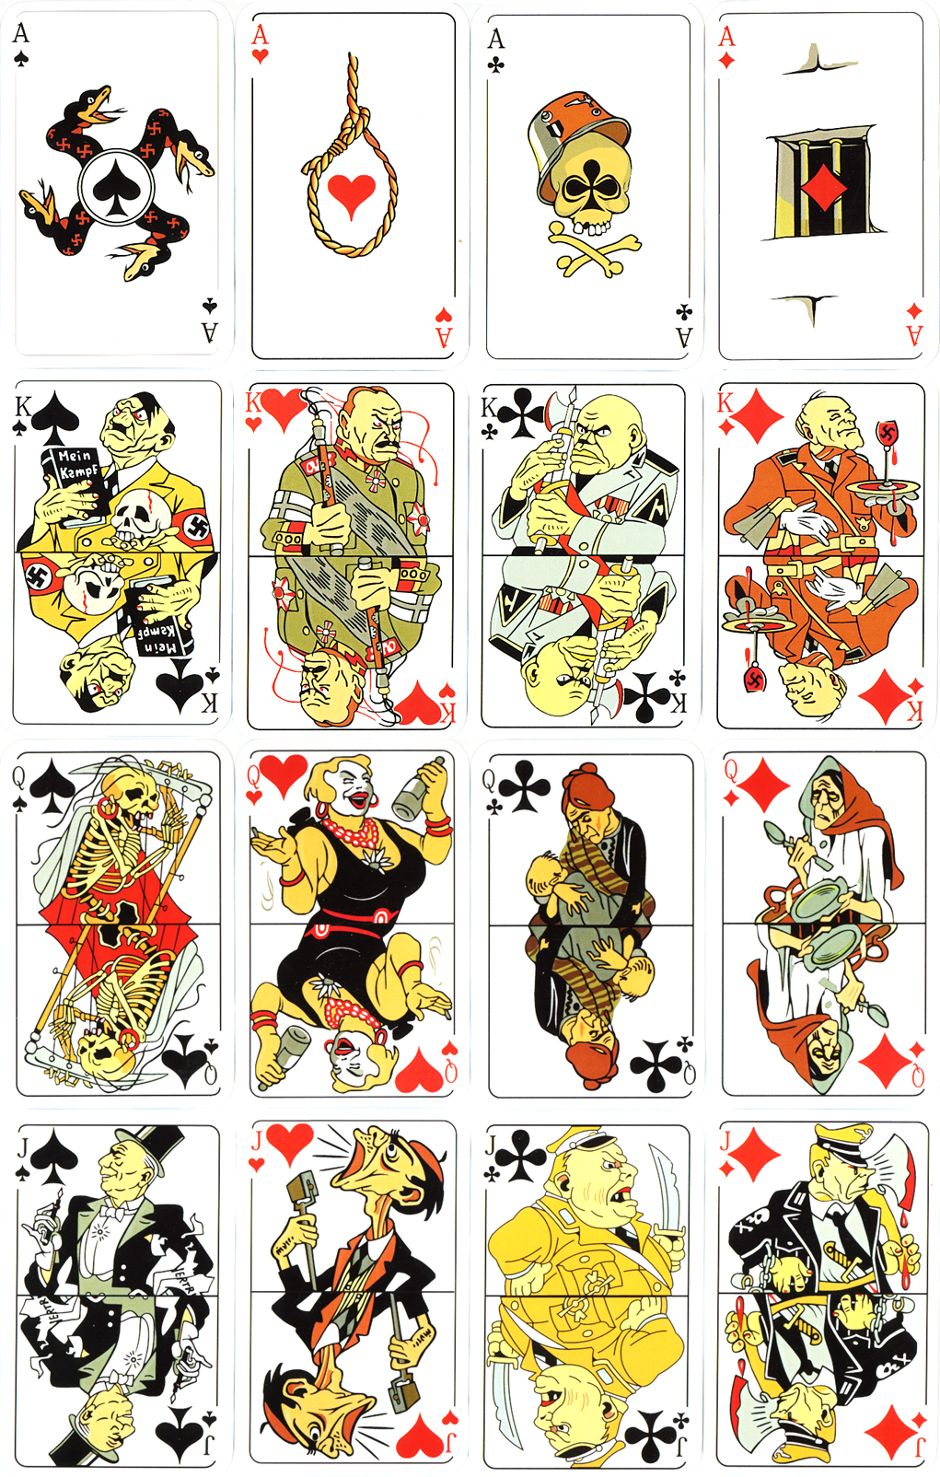 Russian anti-fascist playing cards first published in 1943